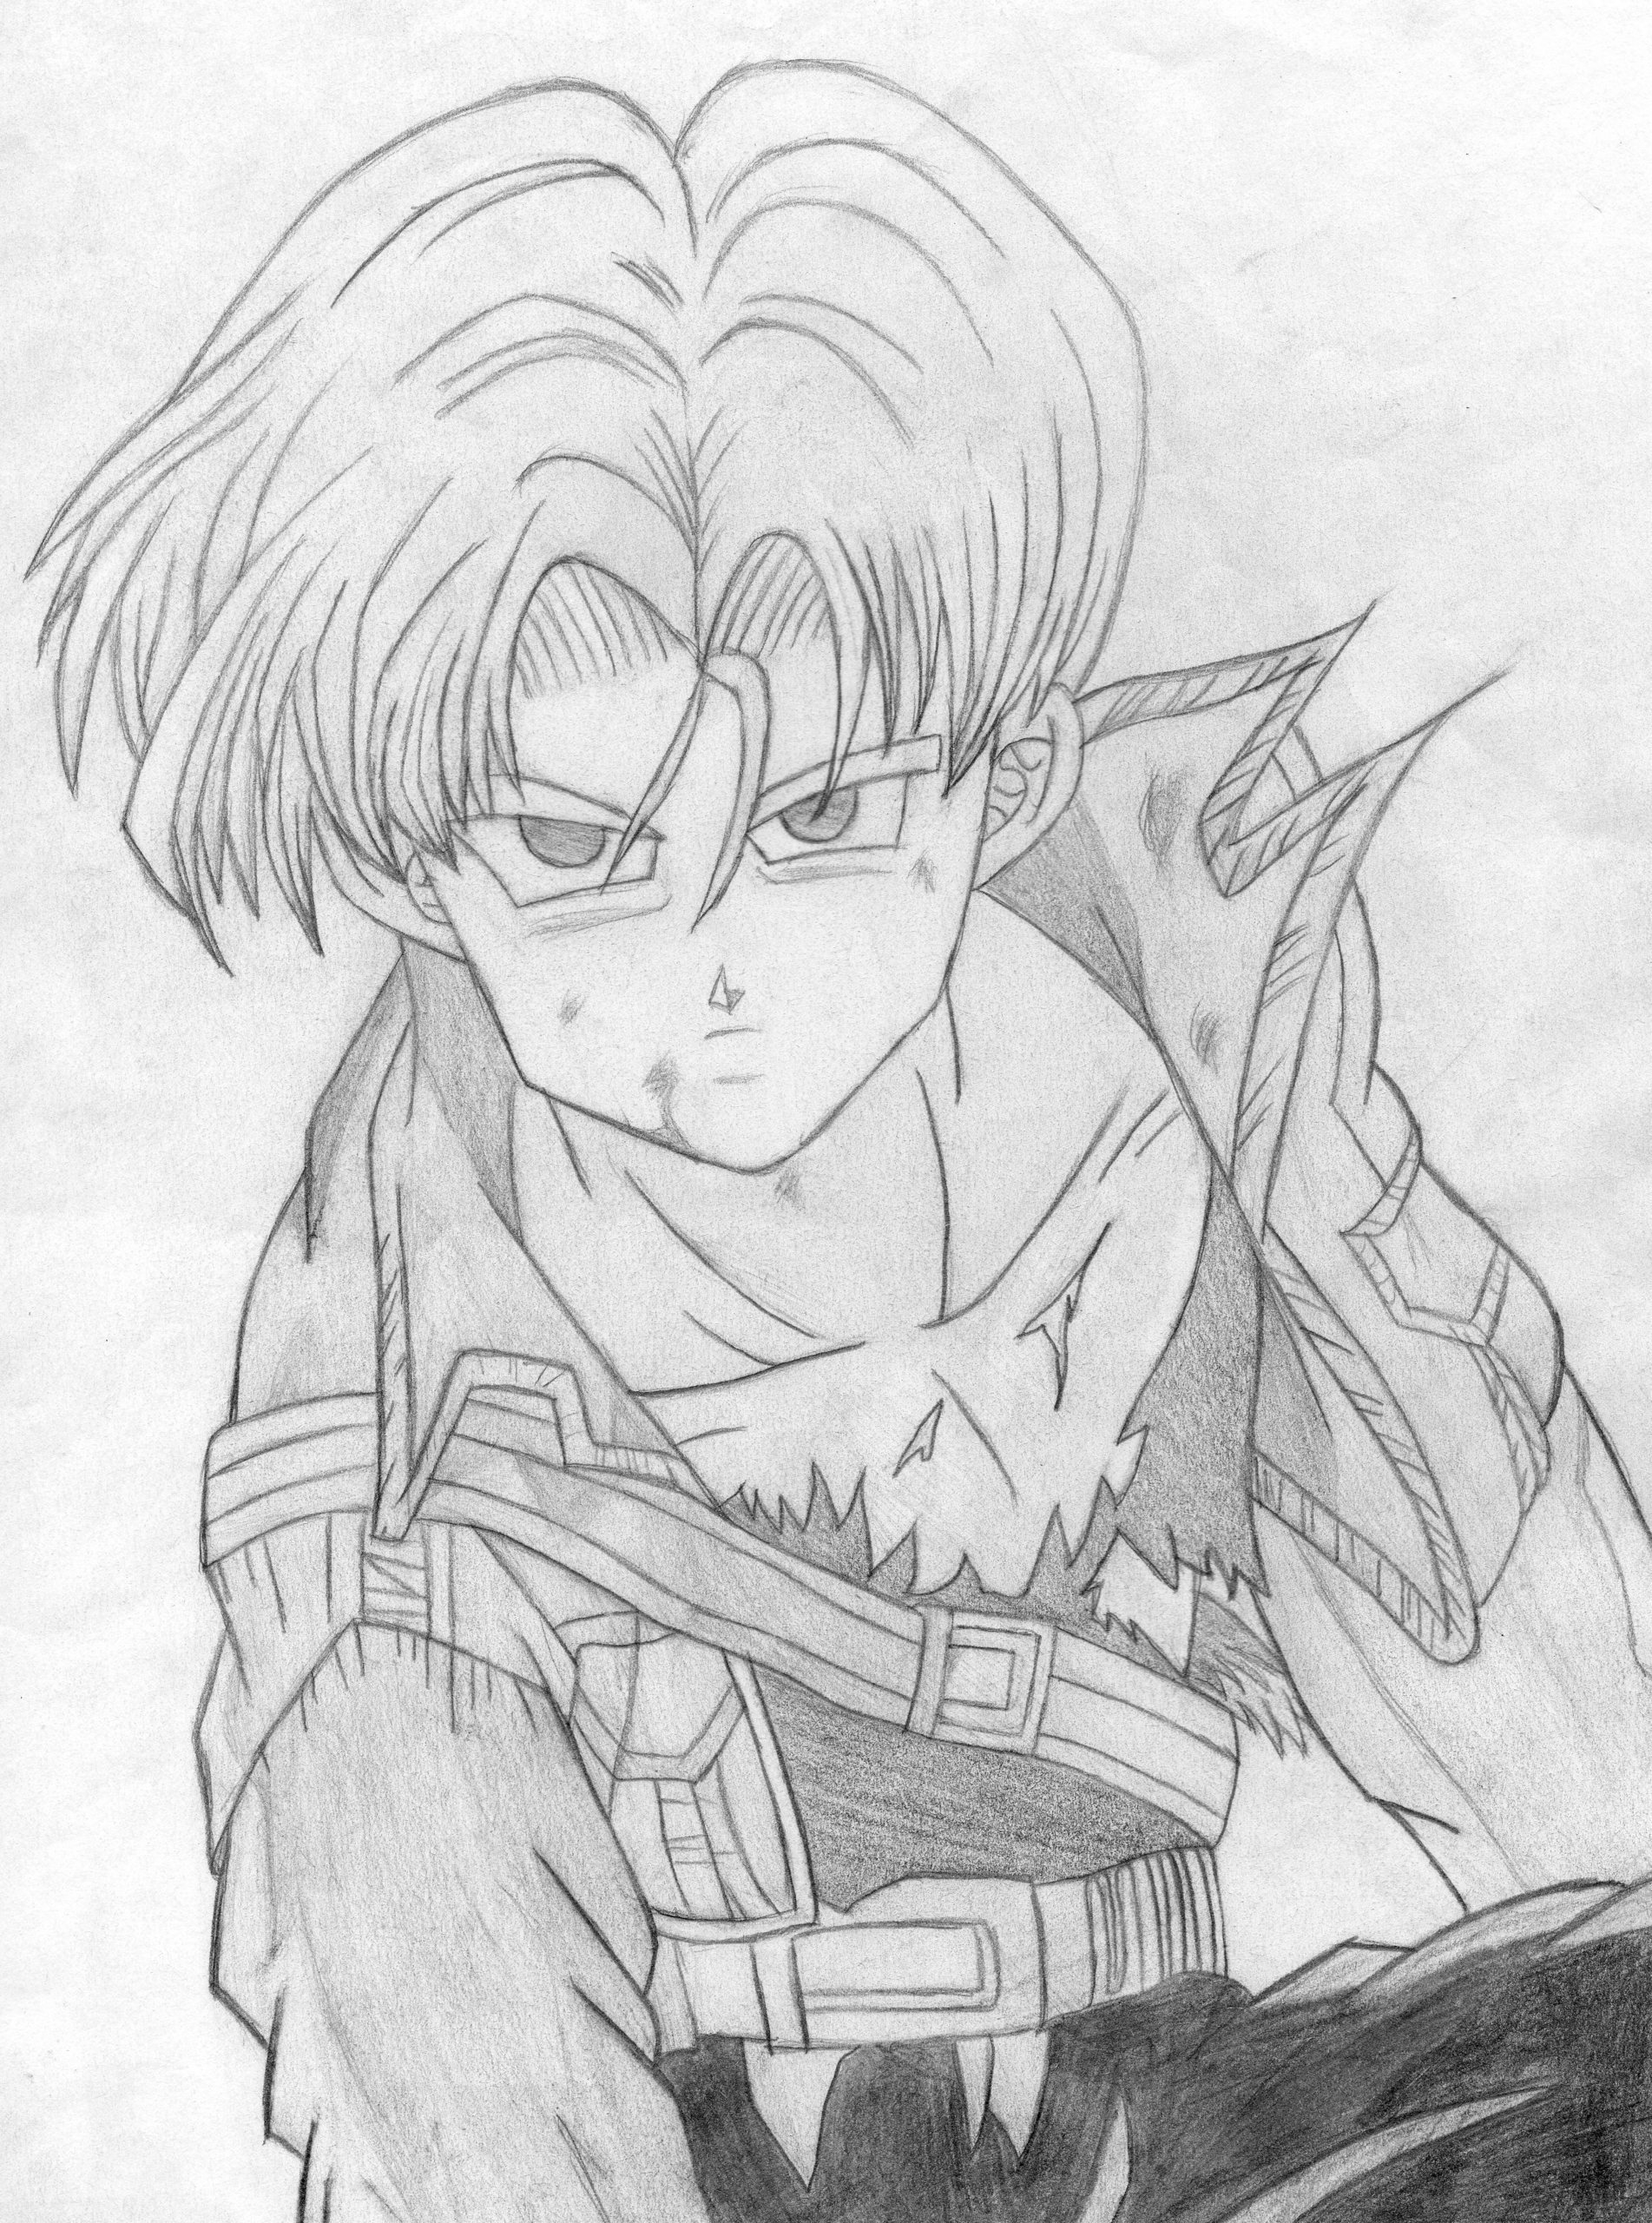 My drawing of Trunks